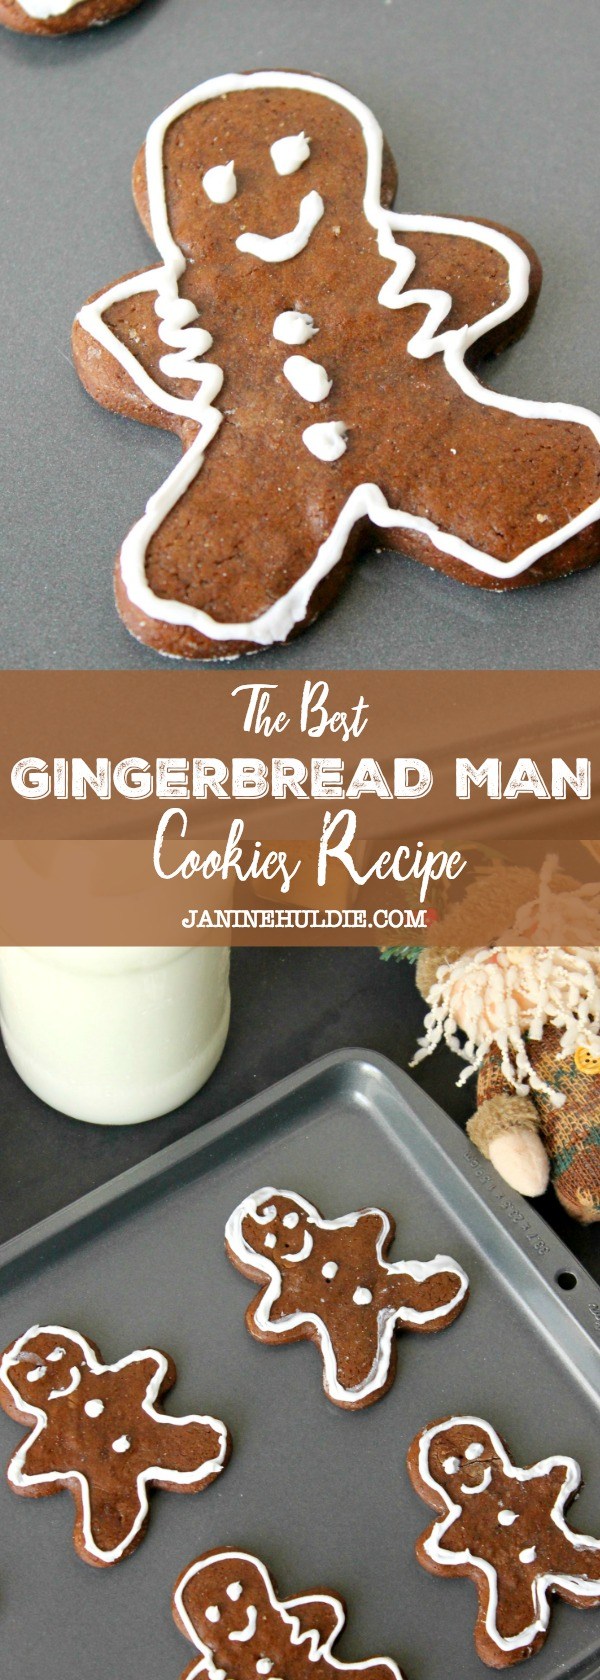 The Best Gingerbread Man Cookies Recipe